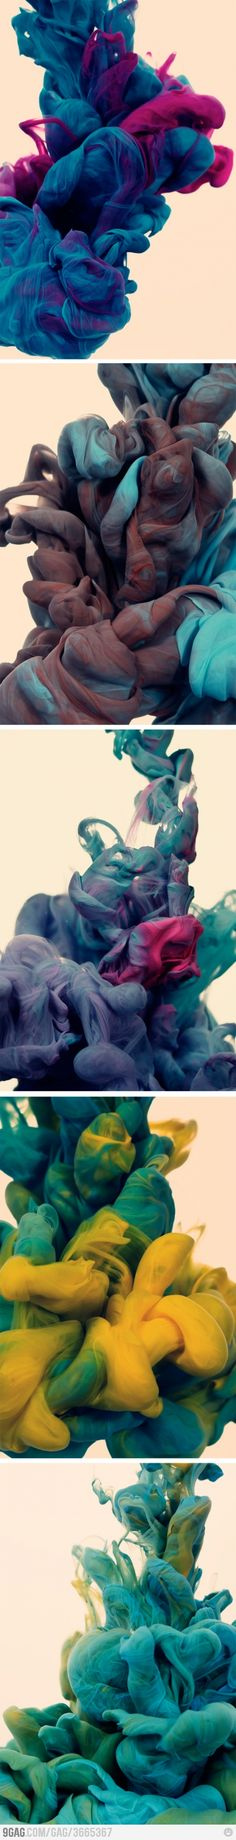 World-renowned graphic designer Alberto Seveso has created an unusual collection of images in a few hours spread all over the world and caused a wide resonance among connoisseurs of photography. No one could believe that this is a live picture without the use of computer graphics. Do you think that's shown in these photos? So impressive results achieved by mixing two colors